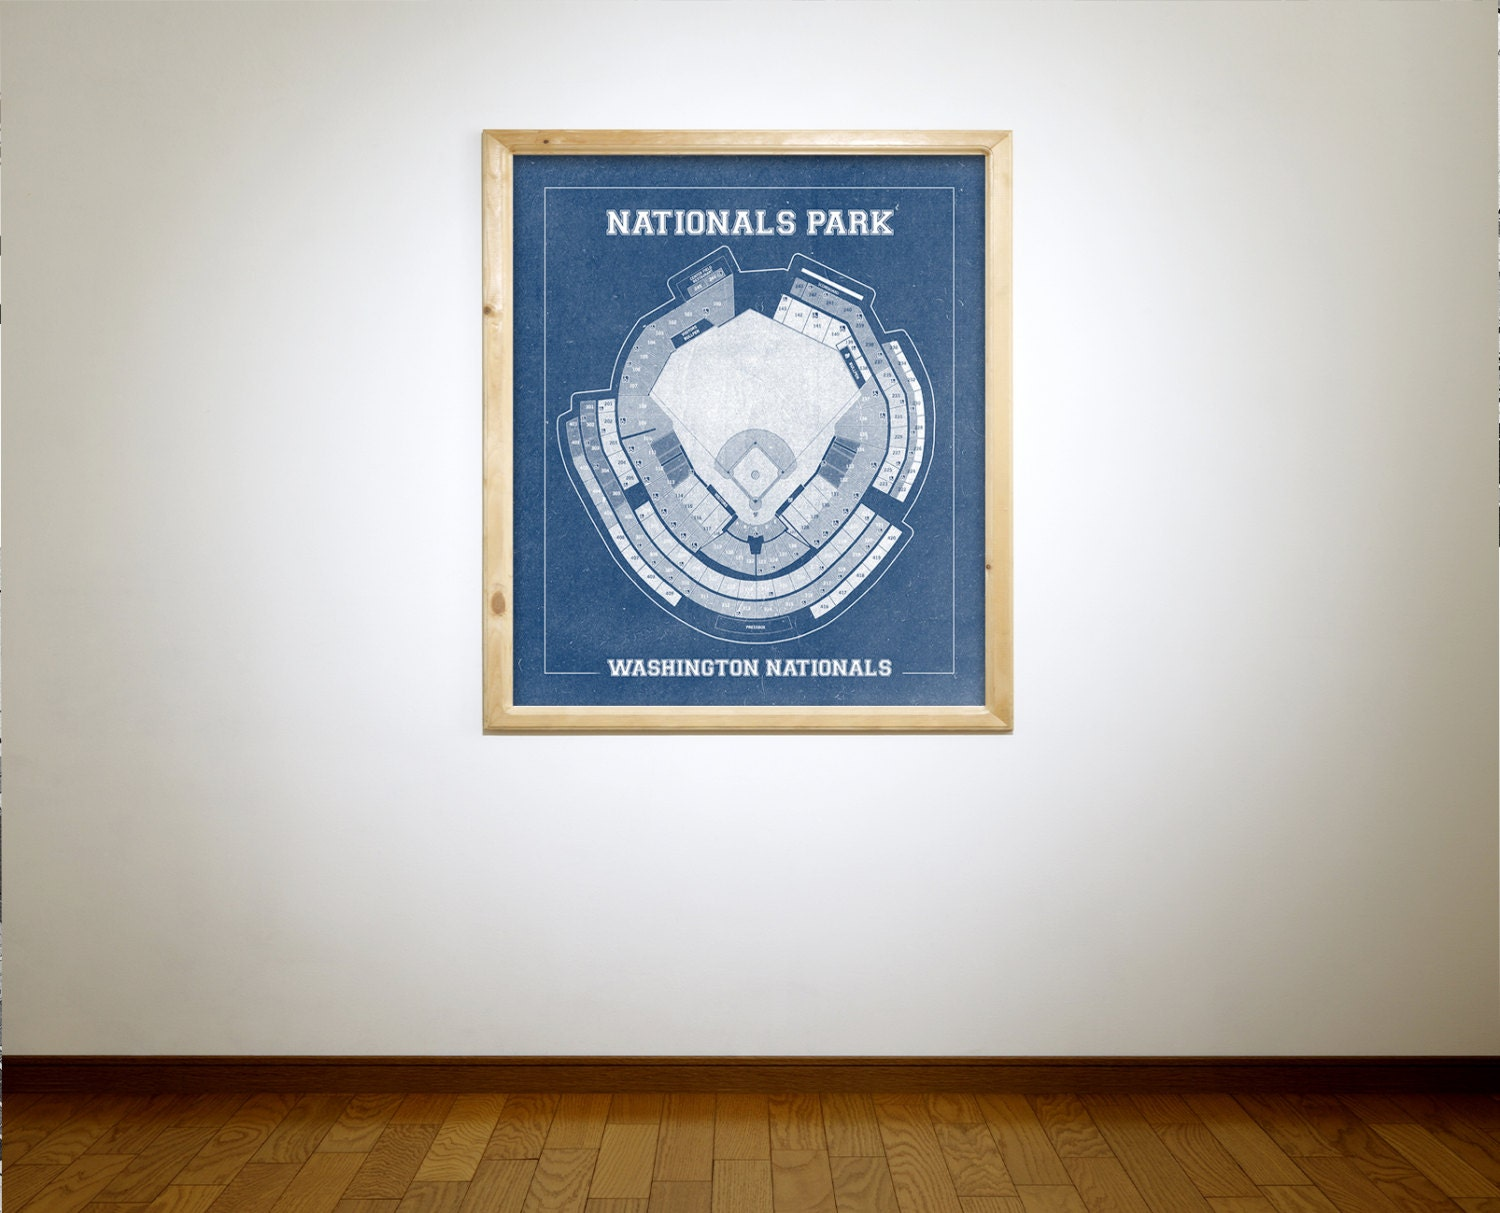 Vintage style print of nationals park on photo paper for 12x15 calculator